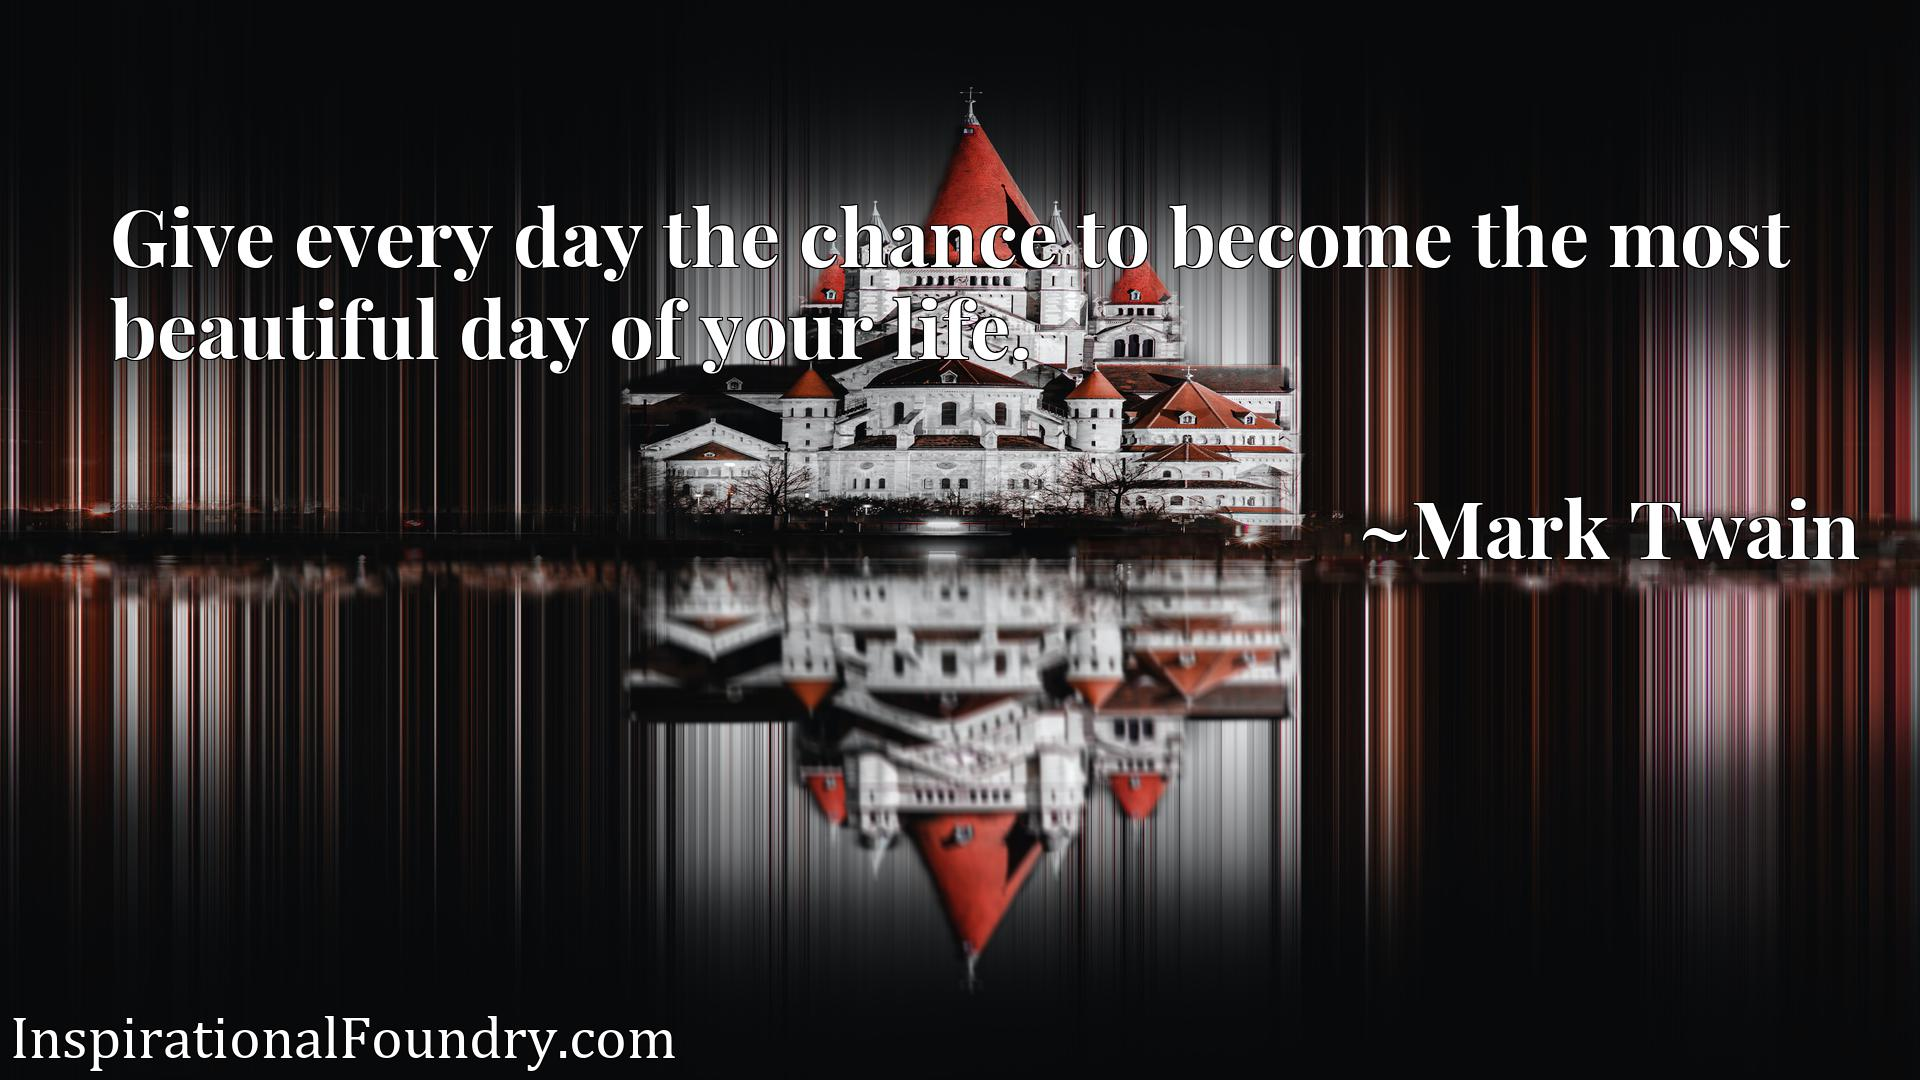 Give every day the chance to become the most beautiful day of your life.